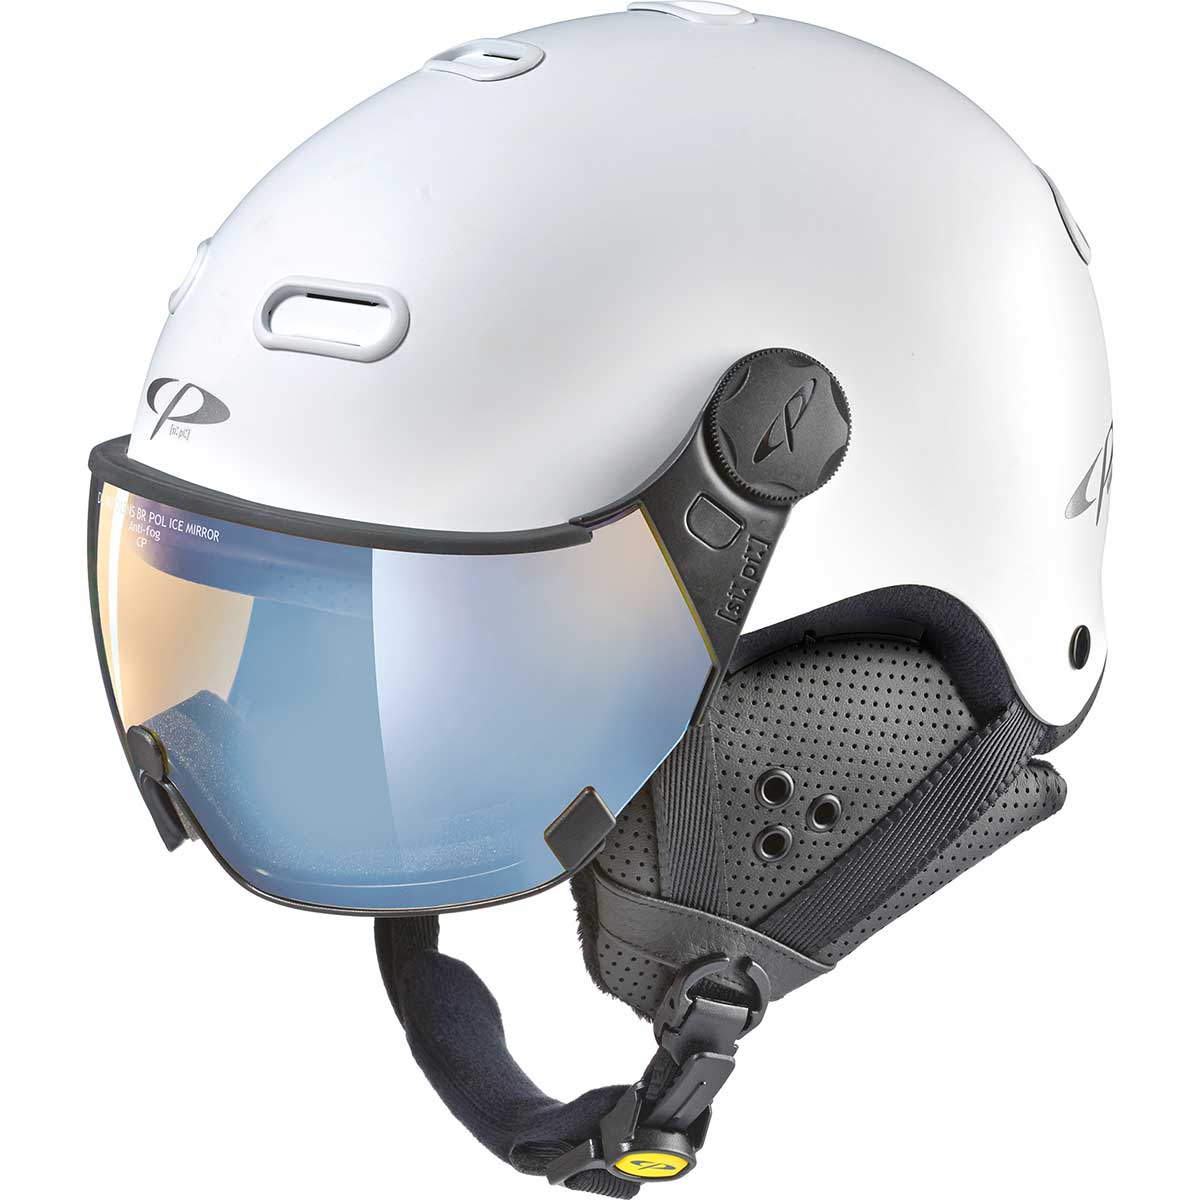 CP Carachillo Helmet with polarized lens in DL Vario Ice Mirror